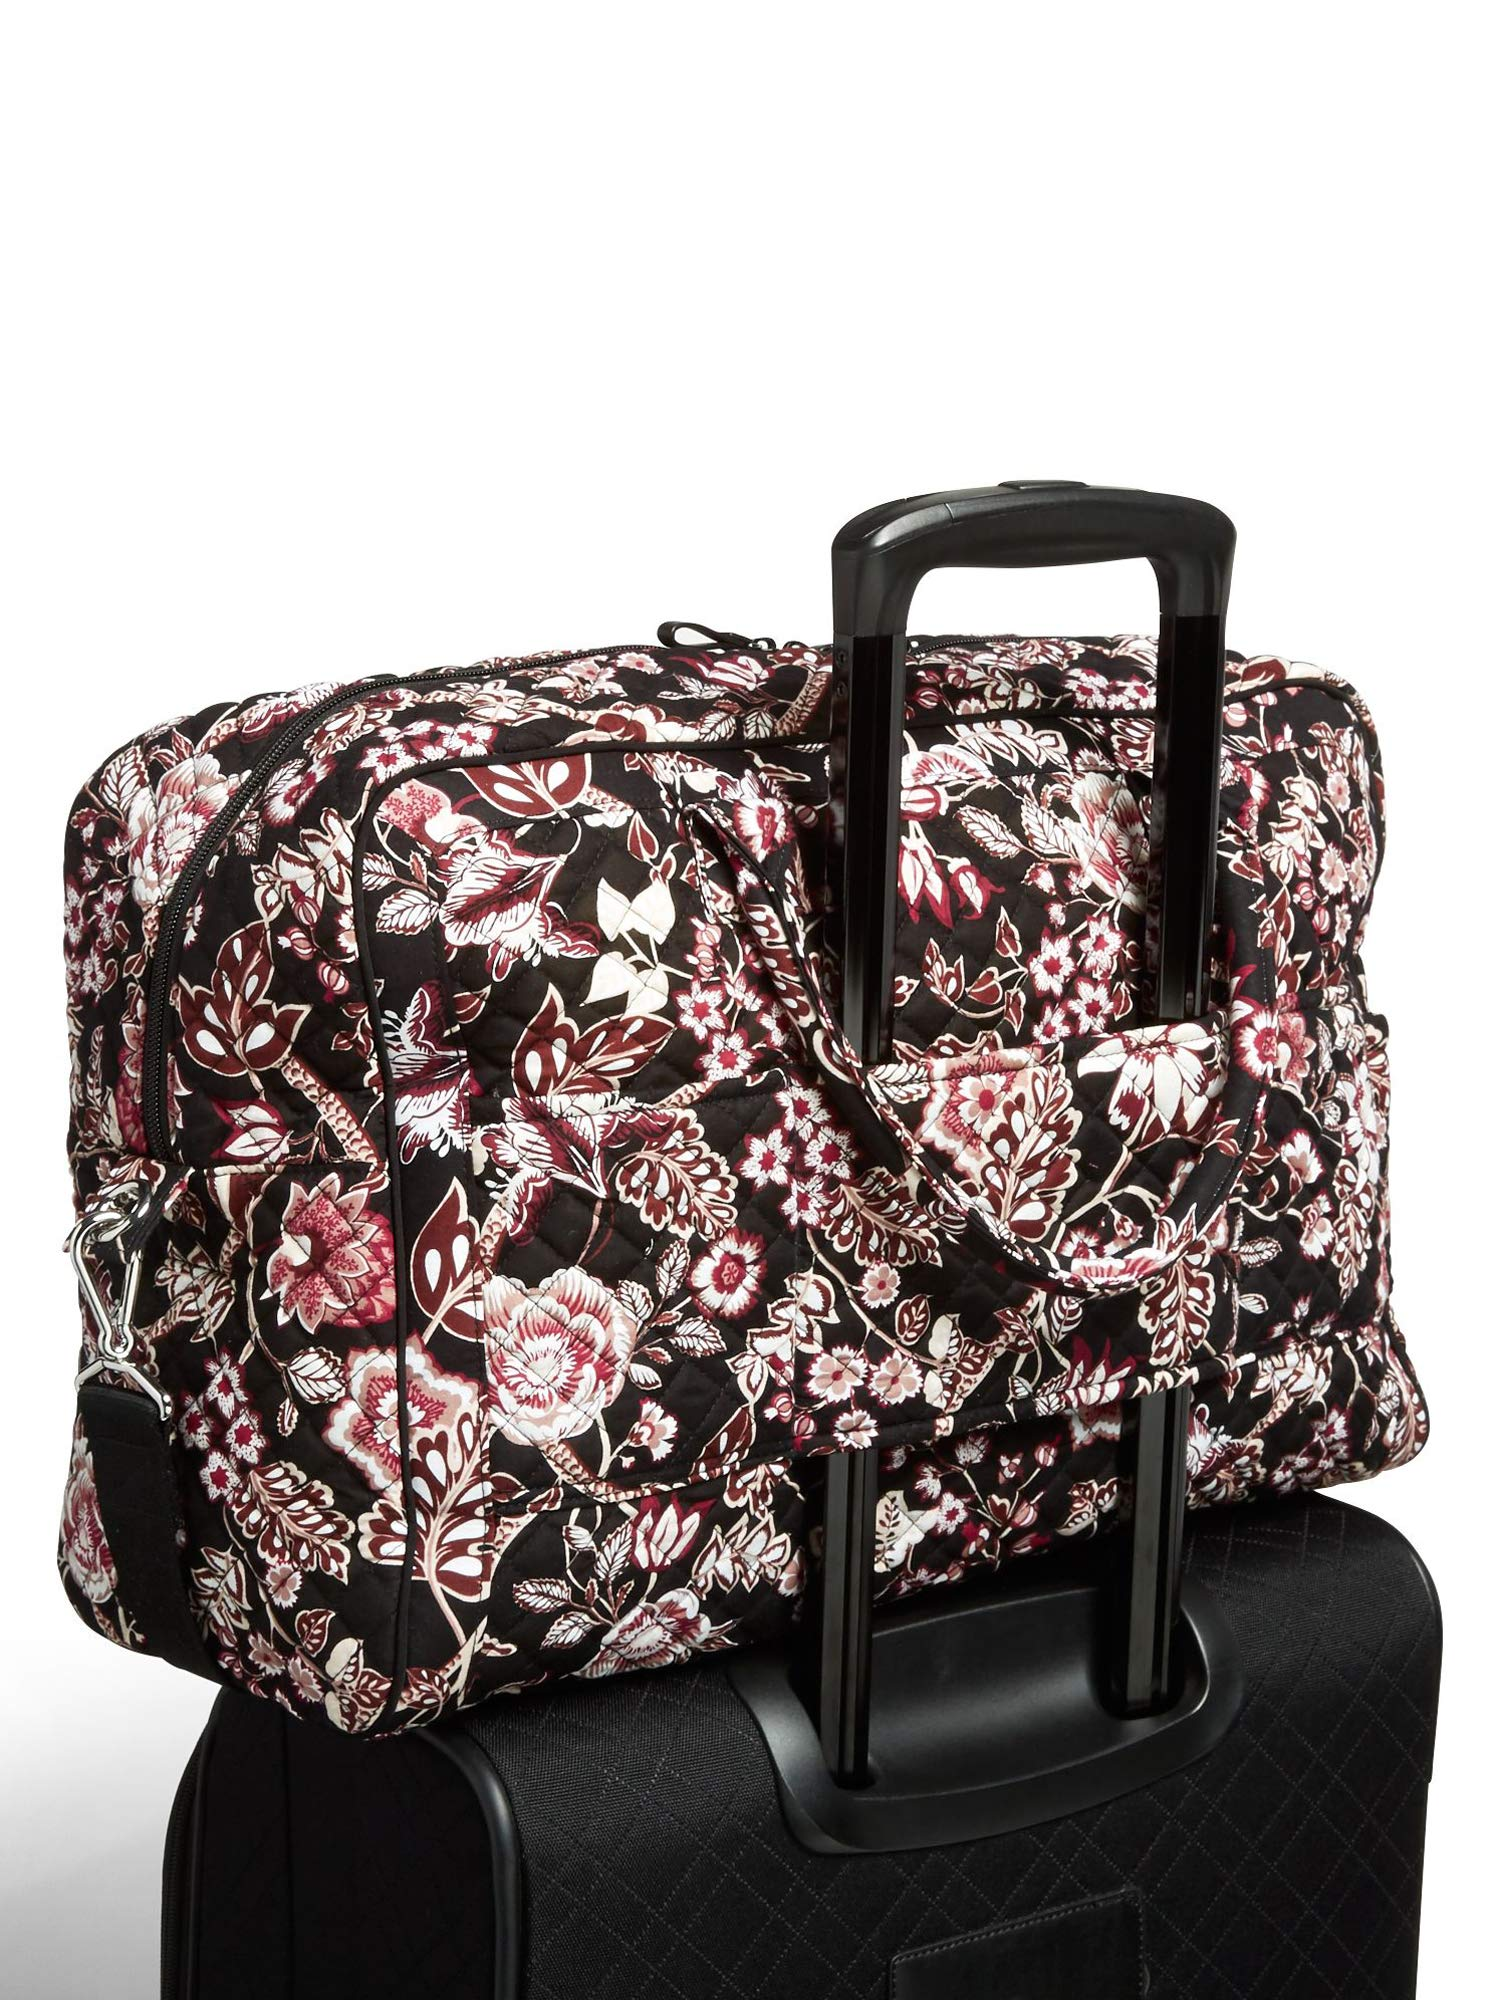 Vera Bradley Iconic Weekender Travel Bag, Signature Cotton, Desert Floral (Black/Vines Floral Neutral) by Vera Bradley (Image #5)